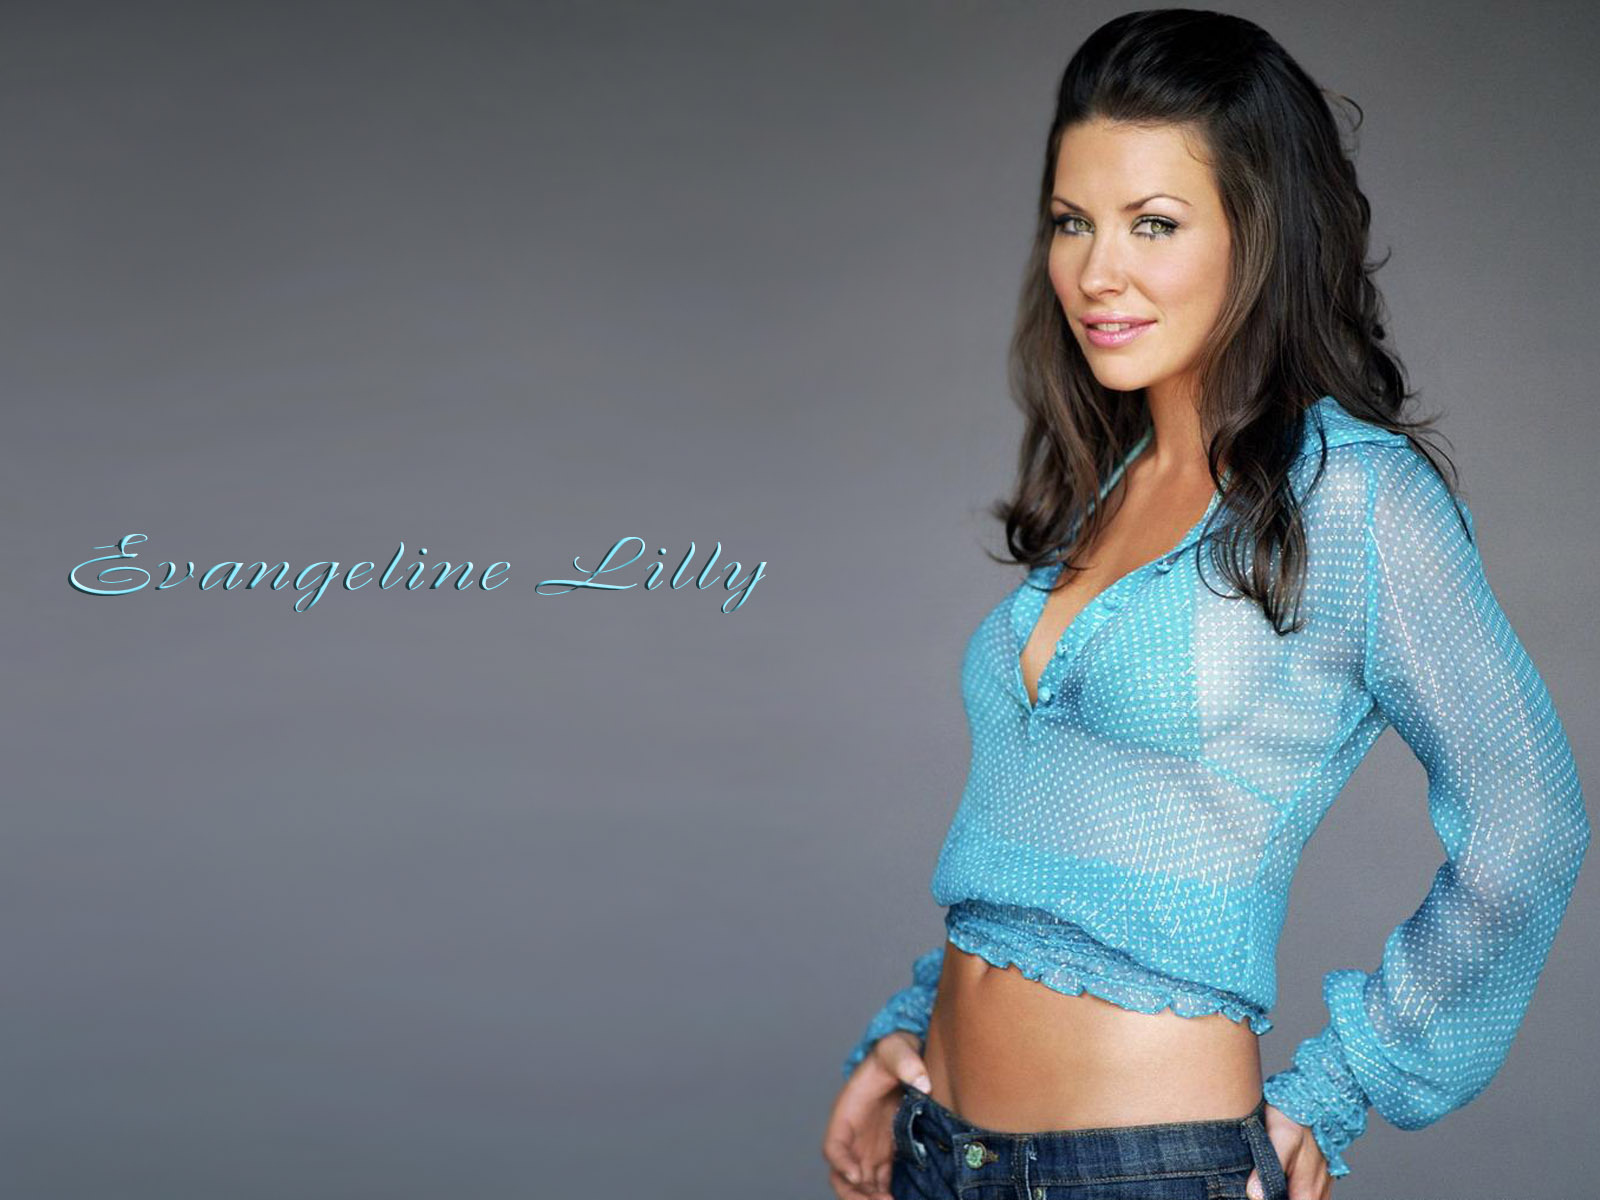 evangeline lilly net worthevangeline lilly 2016, evangeline lilly 2017, evangeline lilly lost, evangeline lilly gif, evangeline lilly photoshoots, evangeline lilly tumblr, evangeline lilly husband, evangeline lilly insta, evangeline lilly young, evangeline lilly net worth, evangeline lilly kate beckinsale, evangeline lilly 2014, evangeline lilly hq, evangeline lilly book, evangeline lilly magazine, evangeline lilly gallery, evangeline lilly kinopoisk, evangeline lilly lee pace, evangeline lilly official, evangeline lilly l'oreal